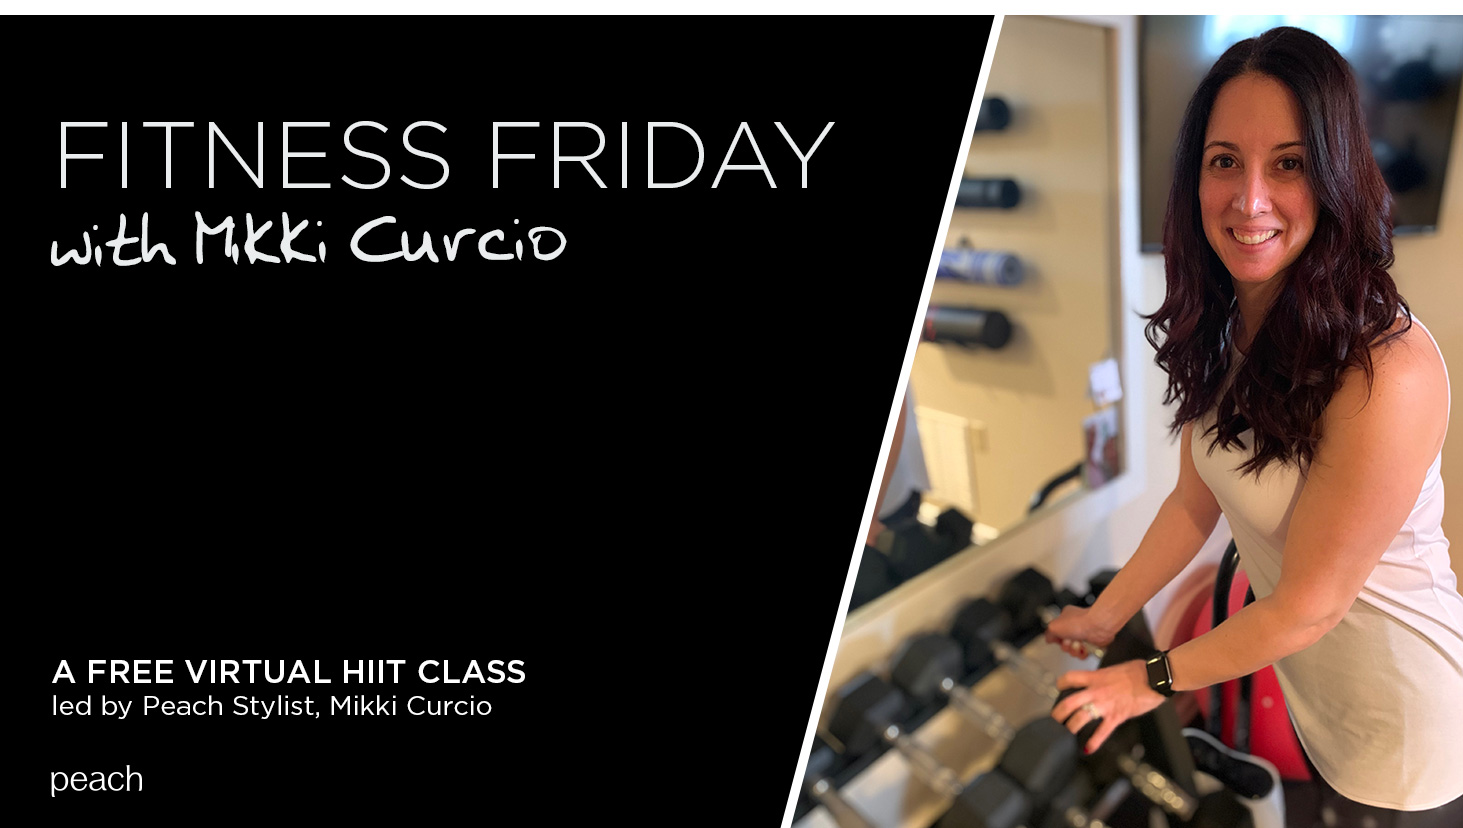 Event images fitnessfriday